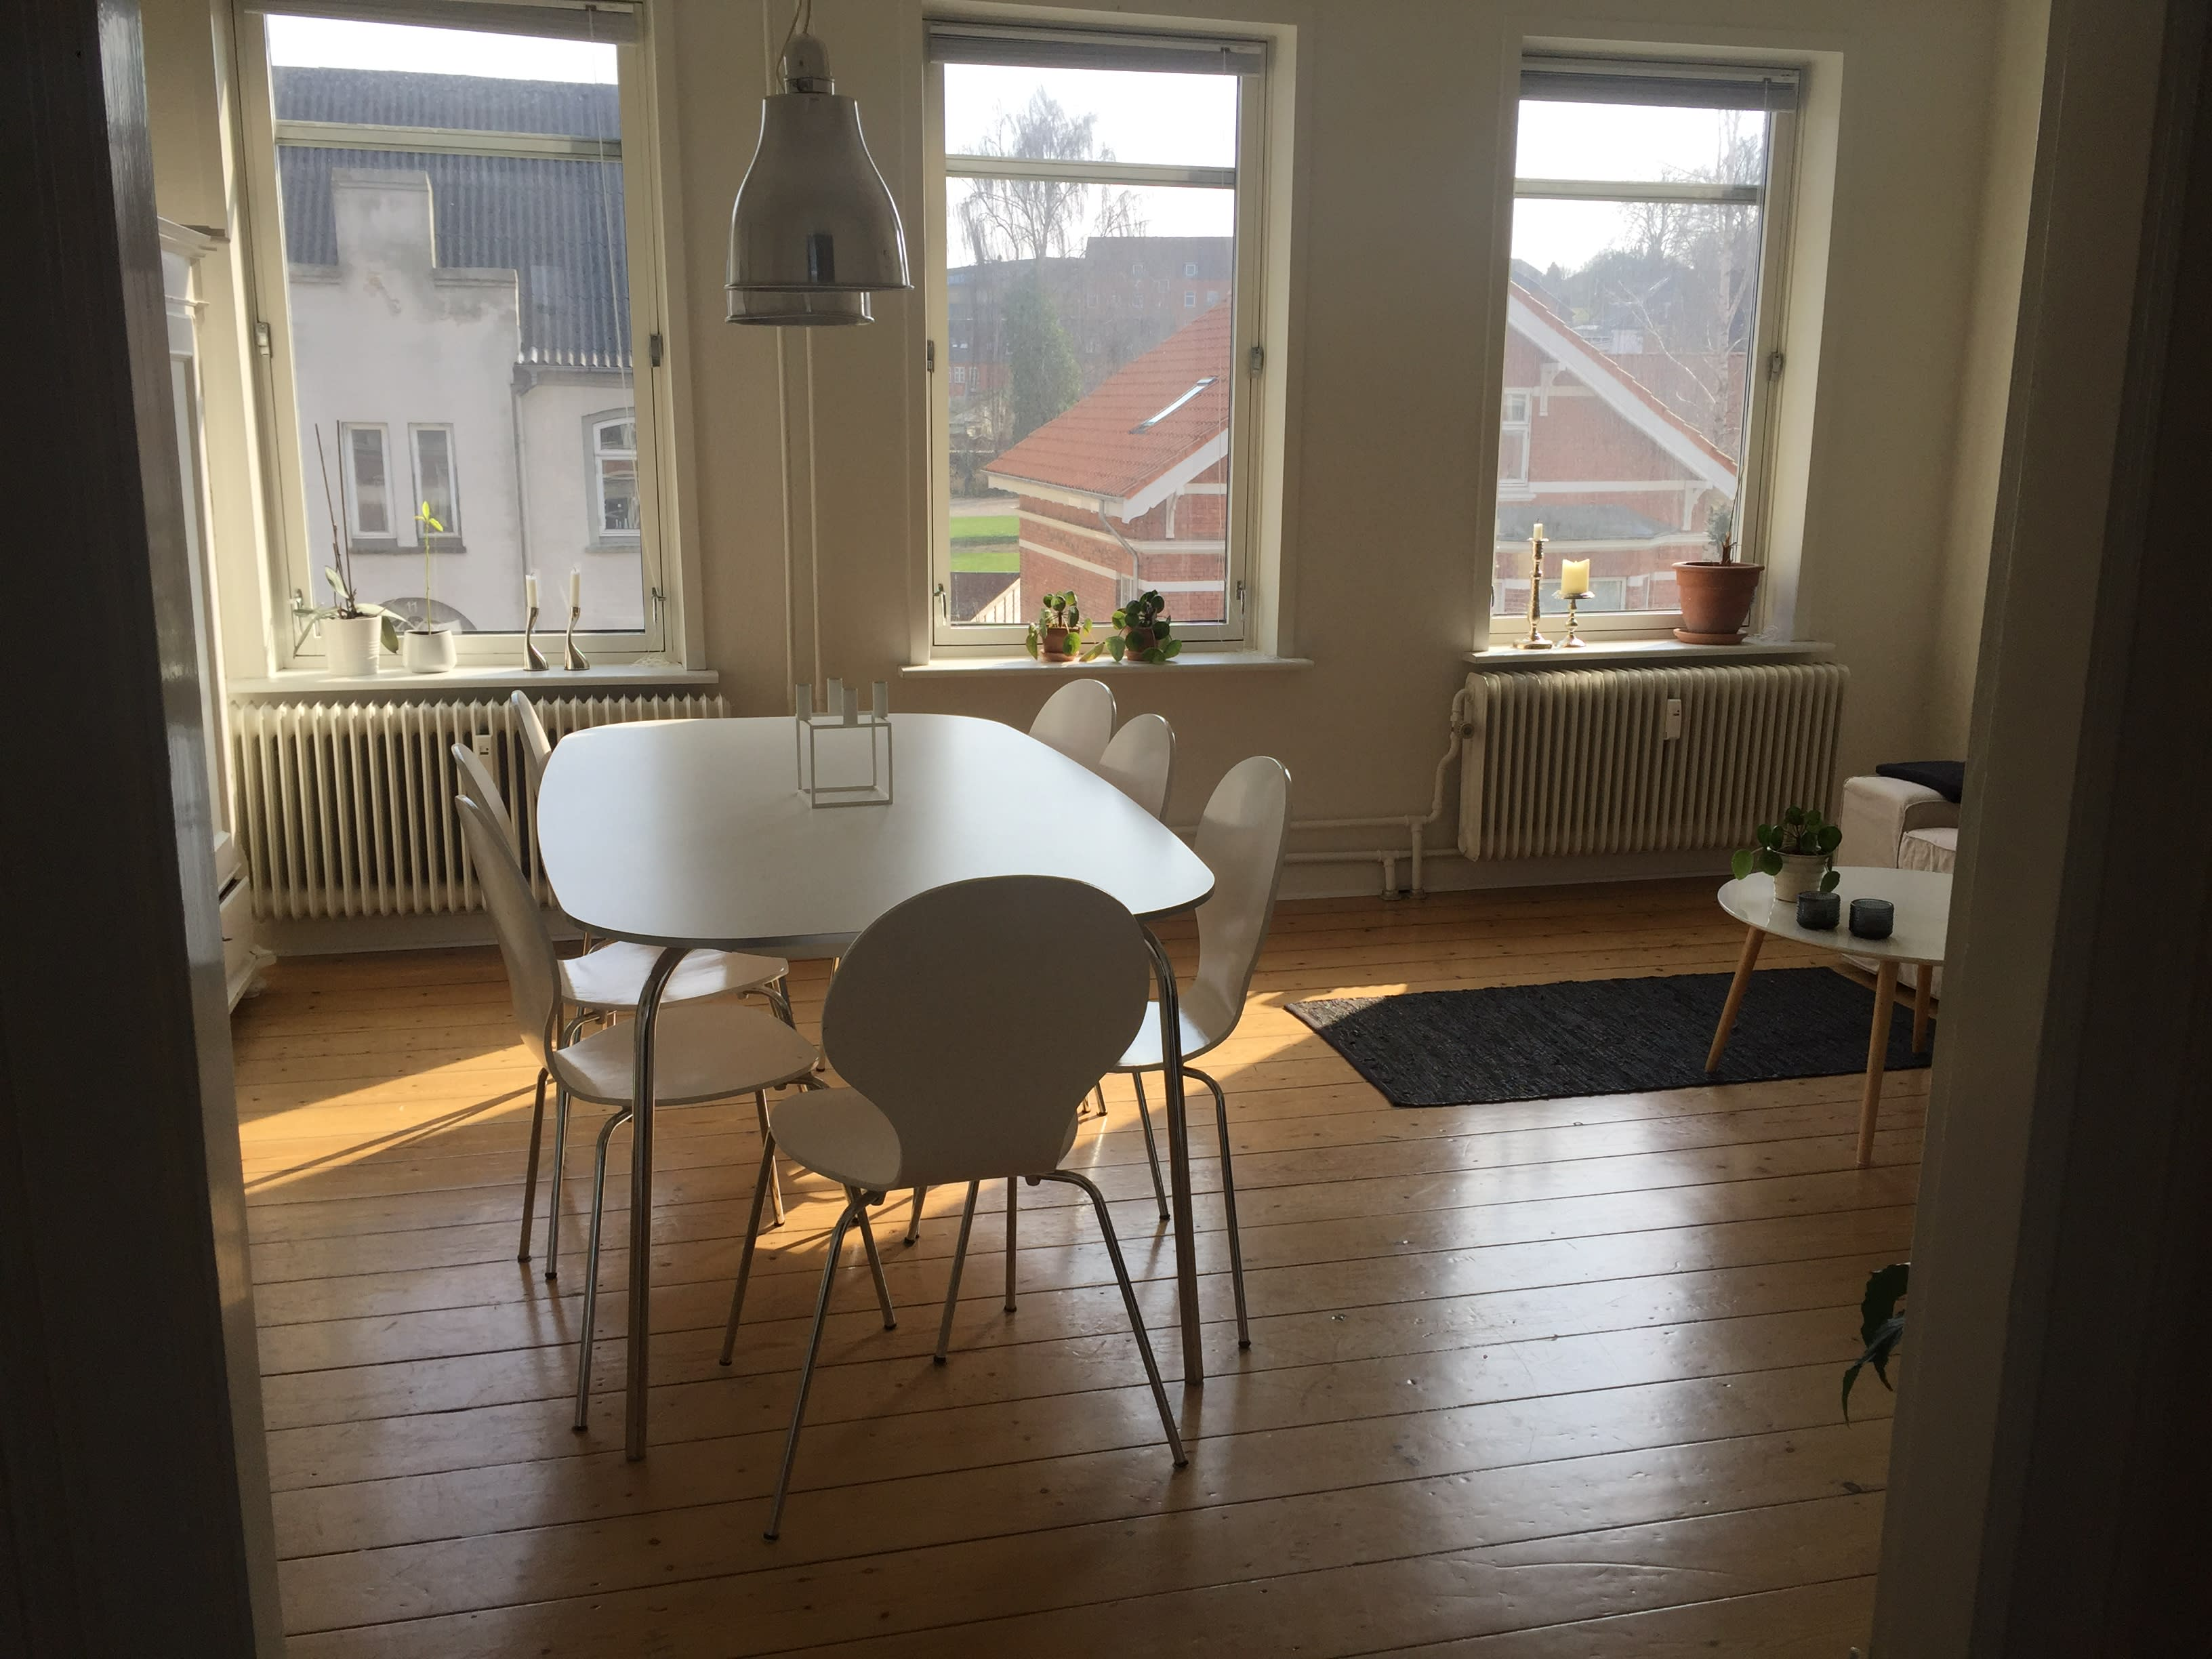 A roomie is being sought for the sharing of a cozy apartment in Kolding